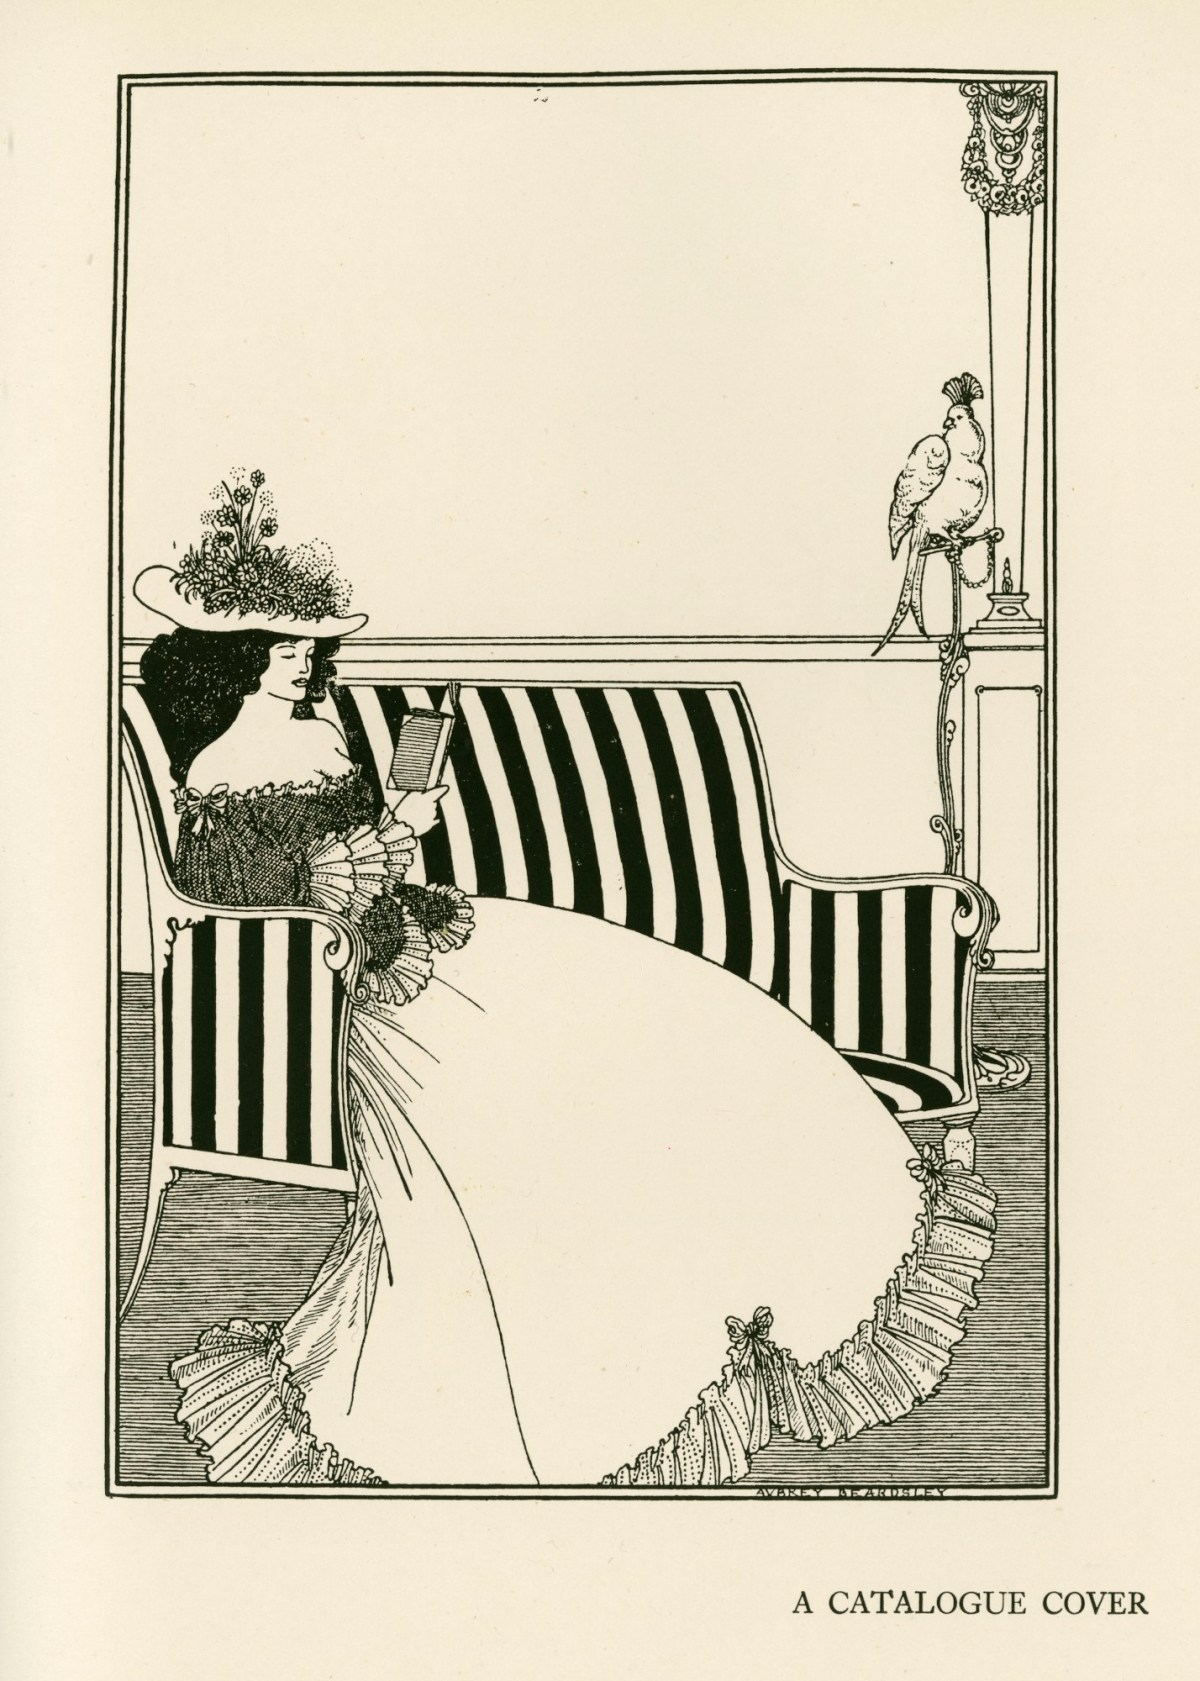 Design for the front wrapper of Leonard Smithers' Catalogue